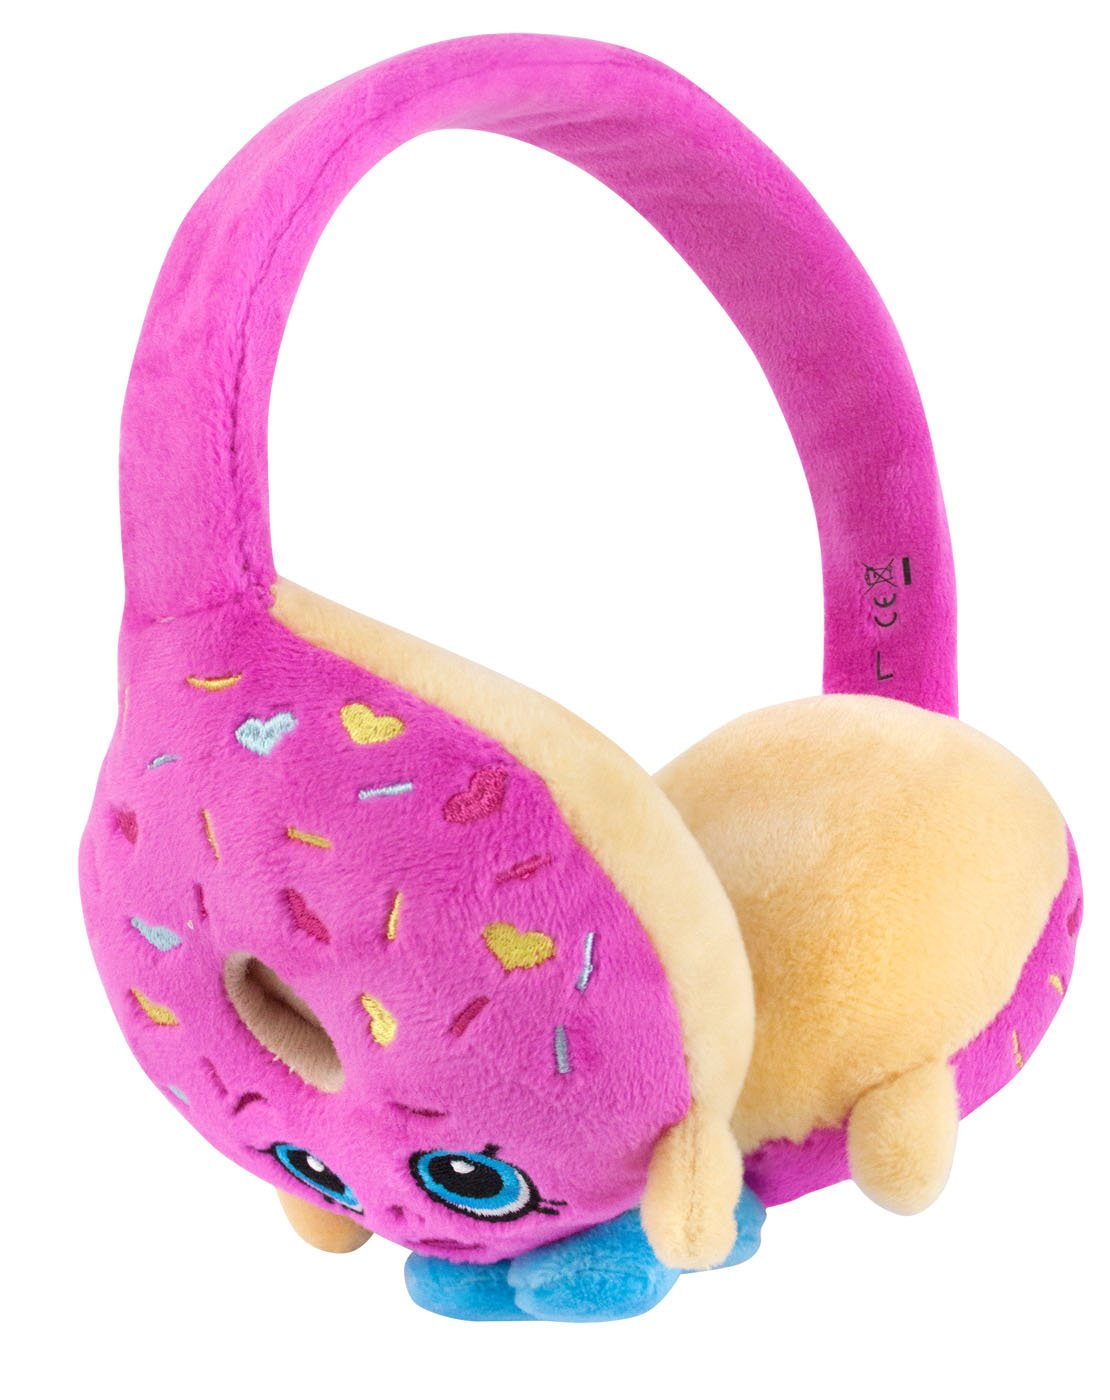 Shopkins D'lish Donut Plush Headphones